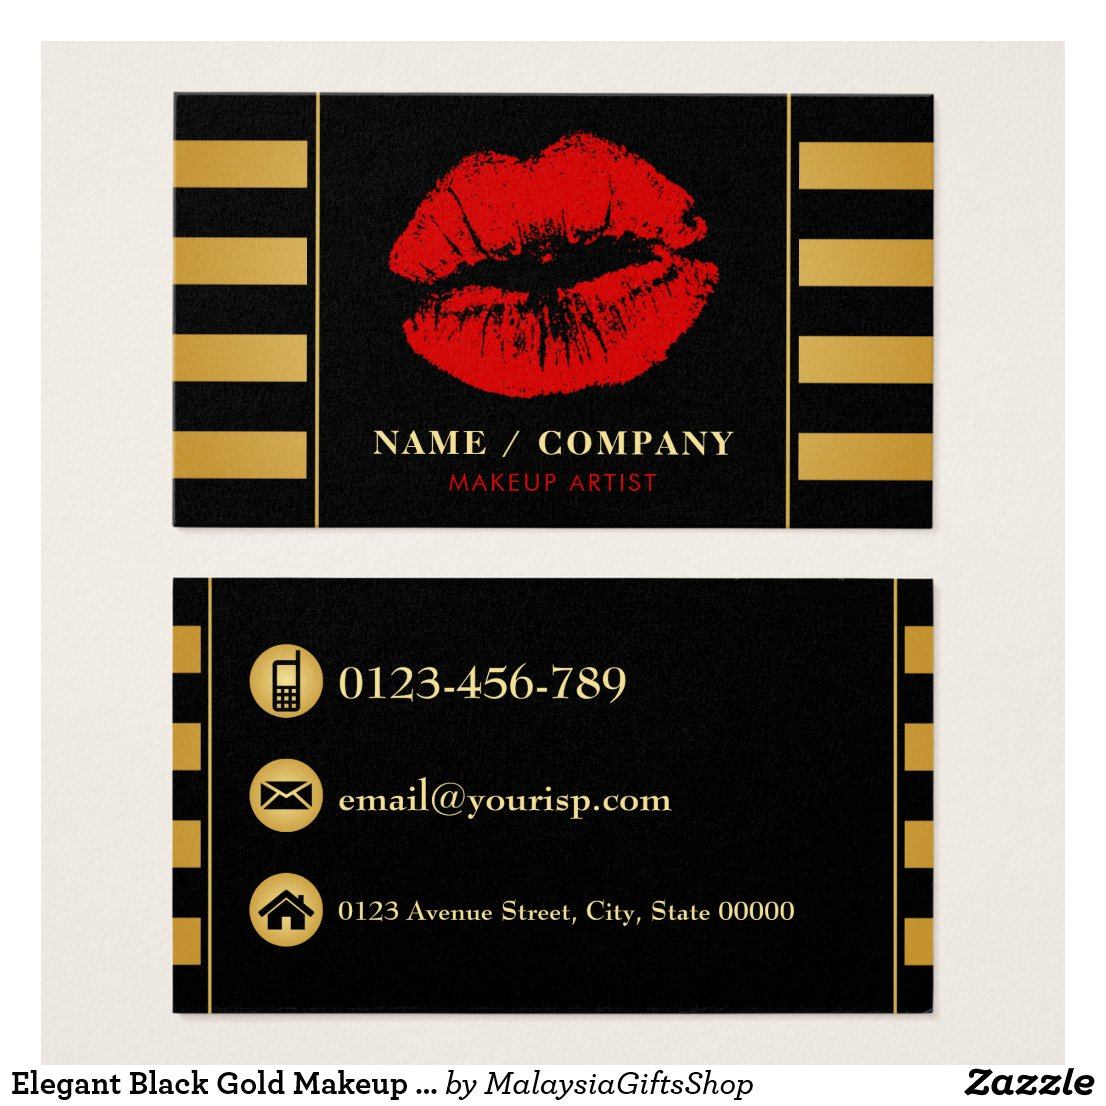 Elegant Black Gold Makeup Artist (Personalize) Business Card